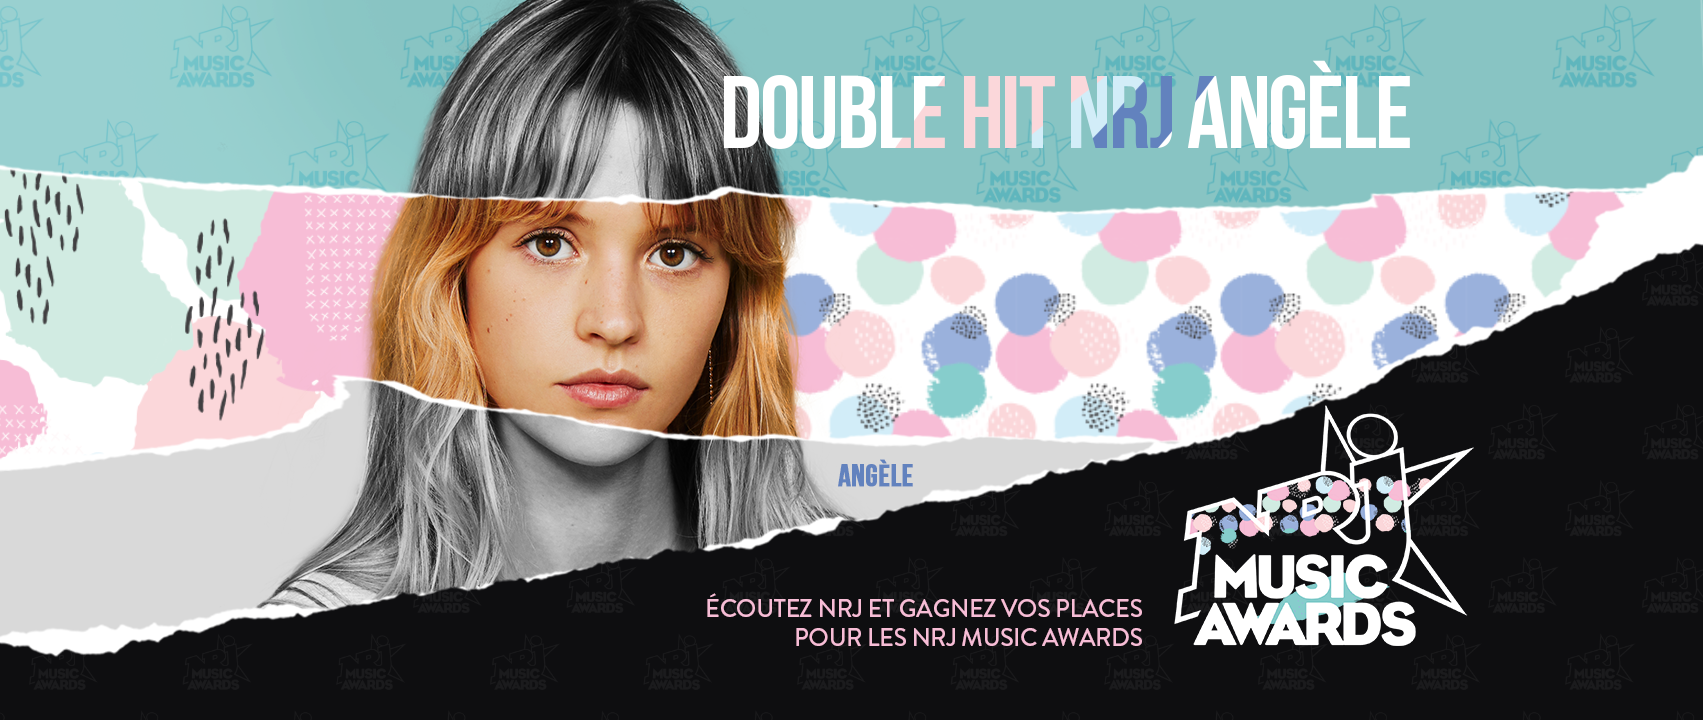 NRJ Music Awards 2019 - NRJ Music Awards - NMA 2019 - NMA - votes